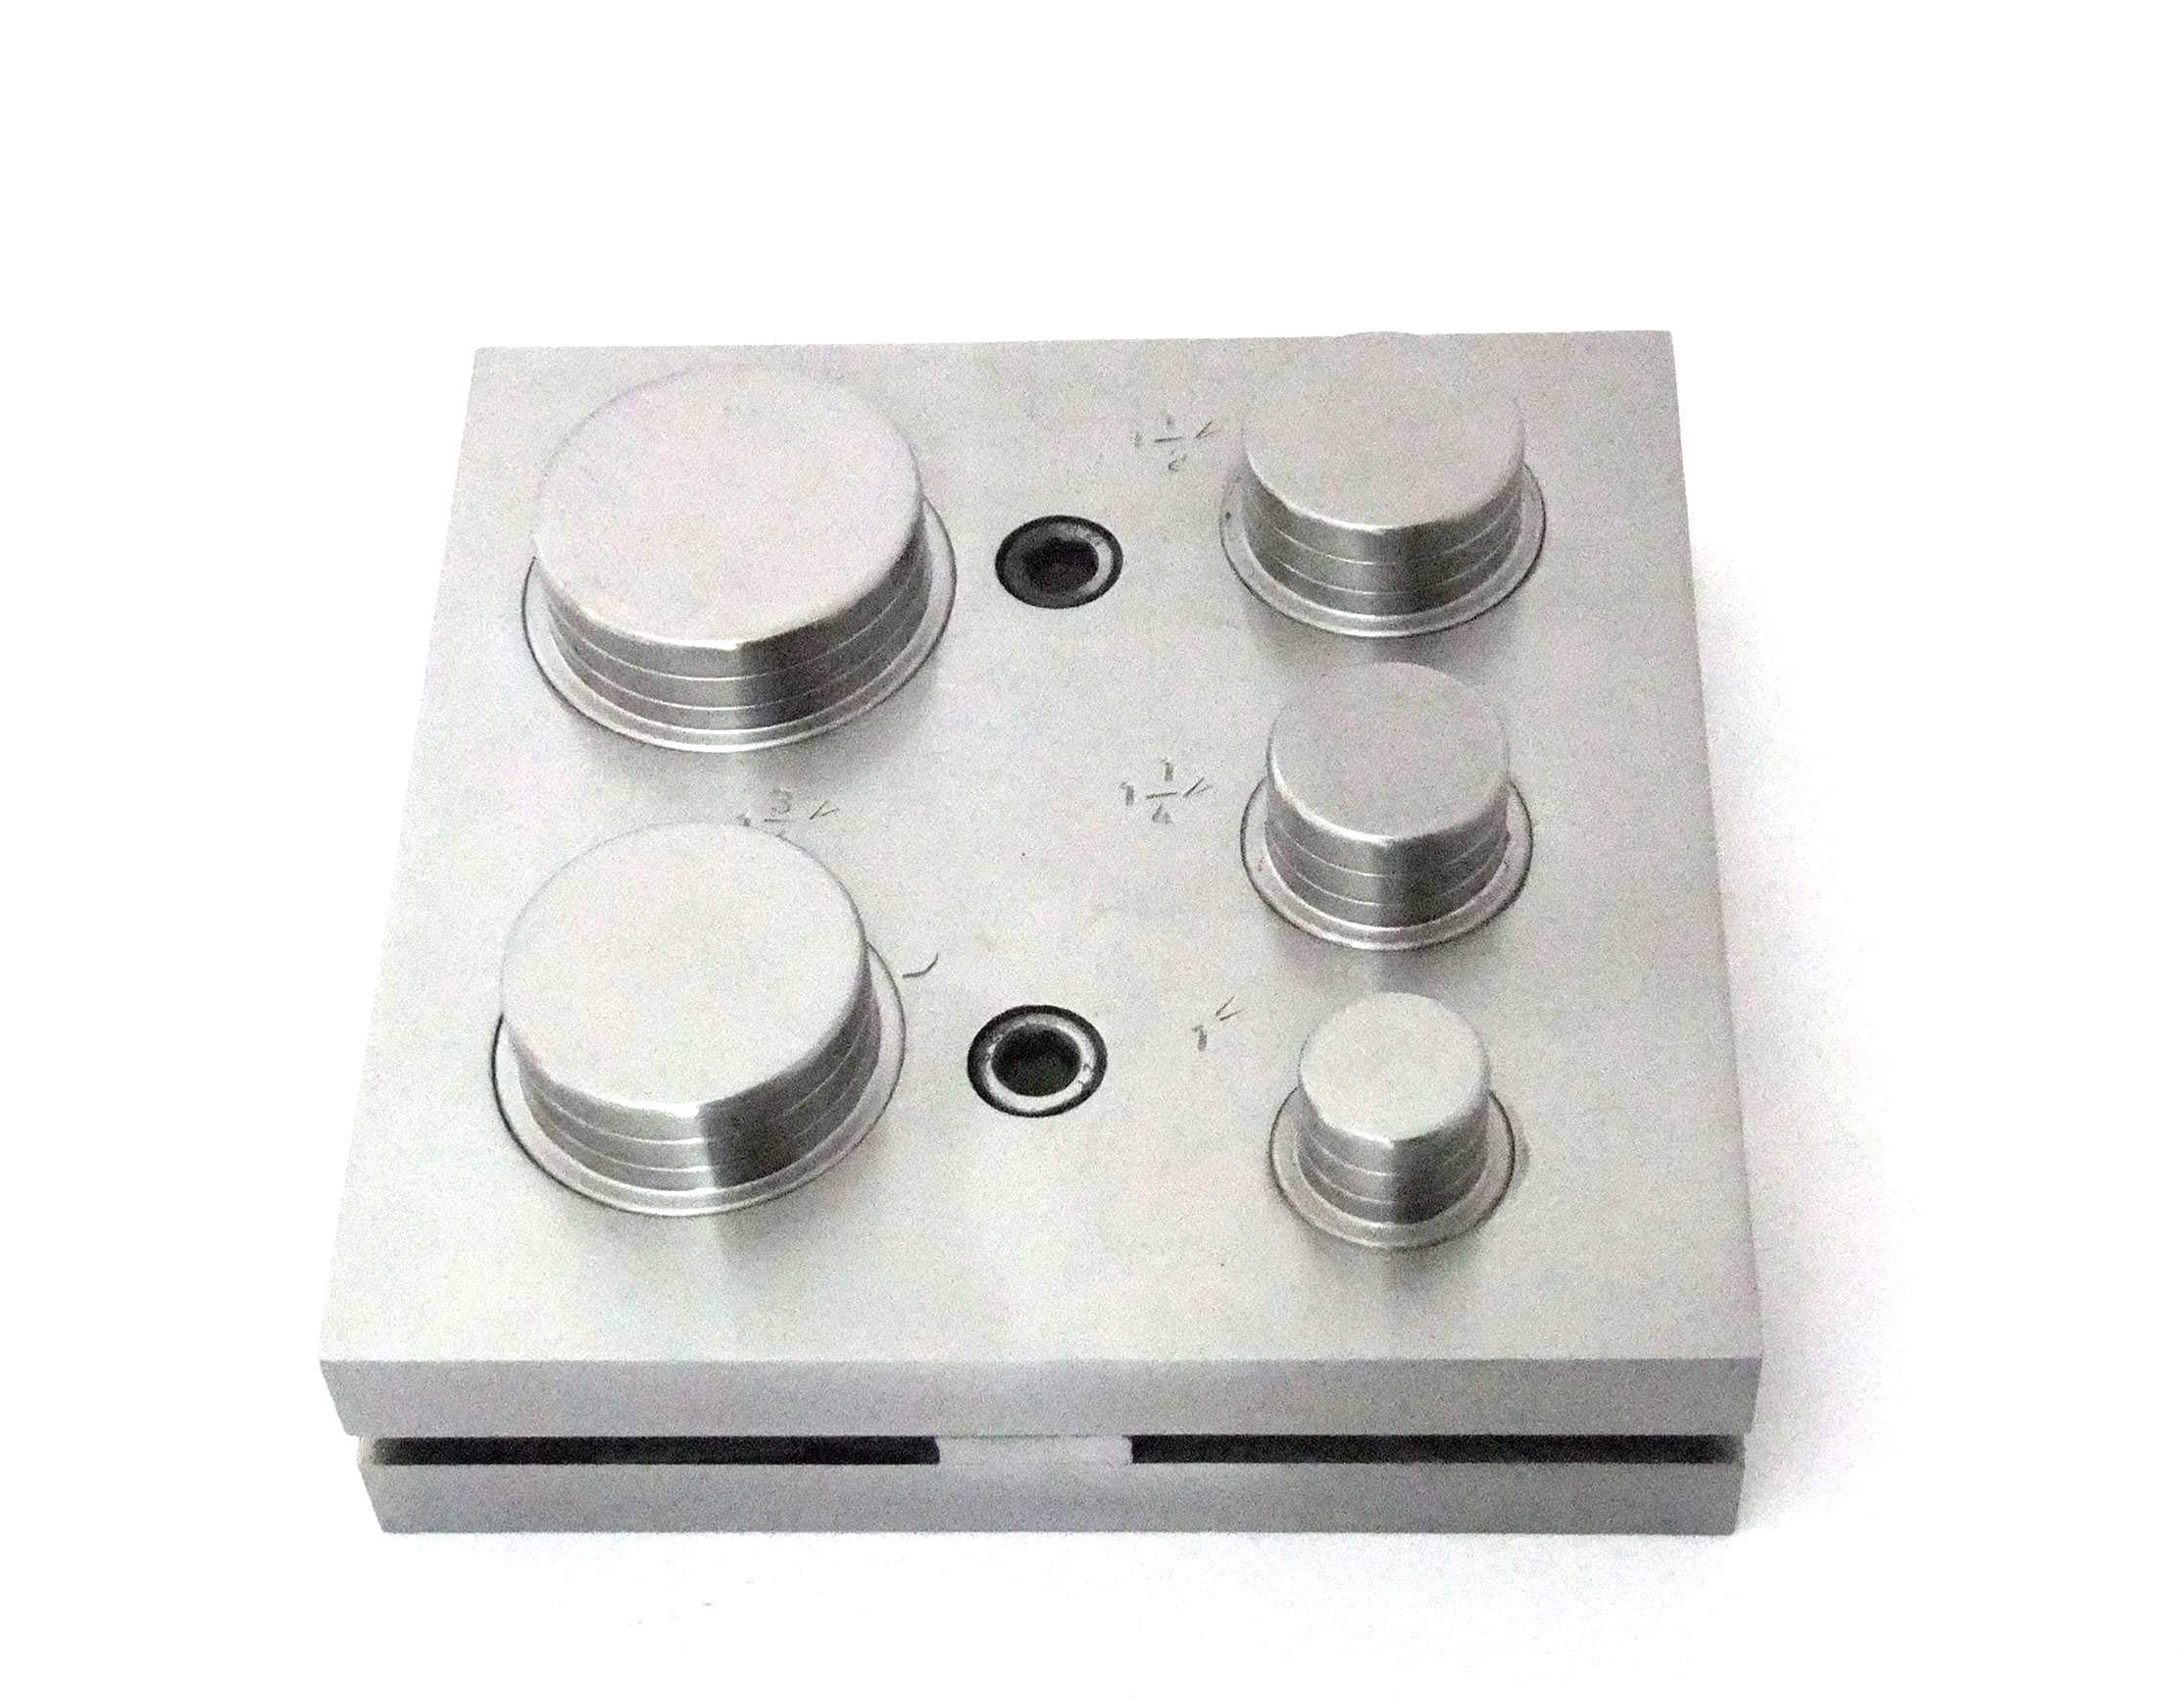 Premium Quality Large Disc Cutter 1 Thru 2 Inch Five Punches by TDs Online Store (Image #1)